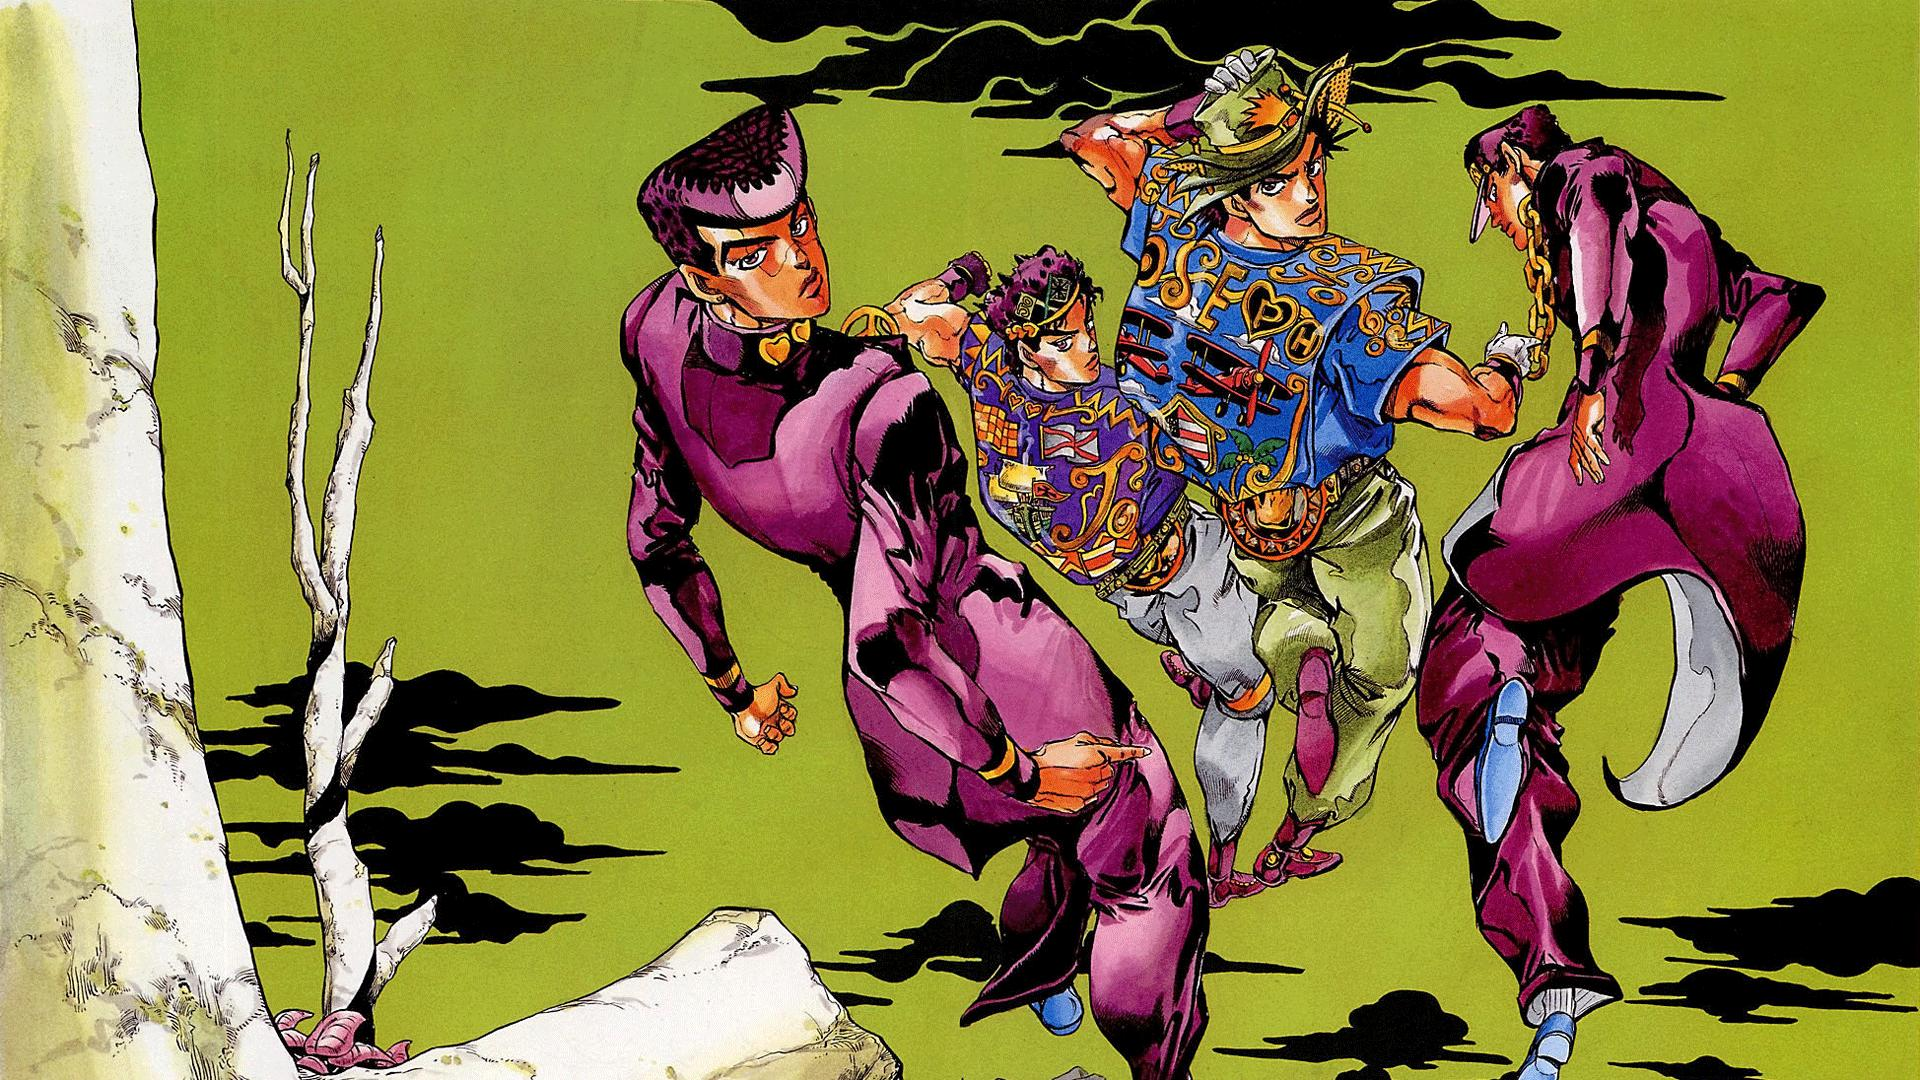 Jojo S Bizarre Adventure 1 4 Hd Wallpaper Background